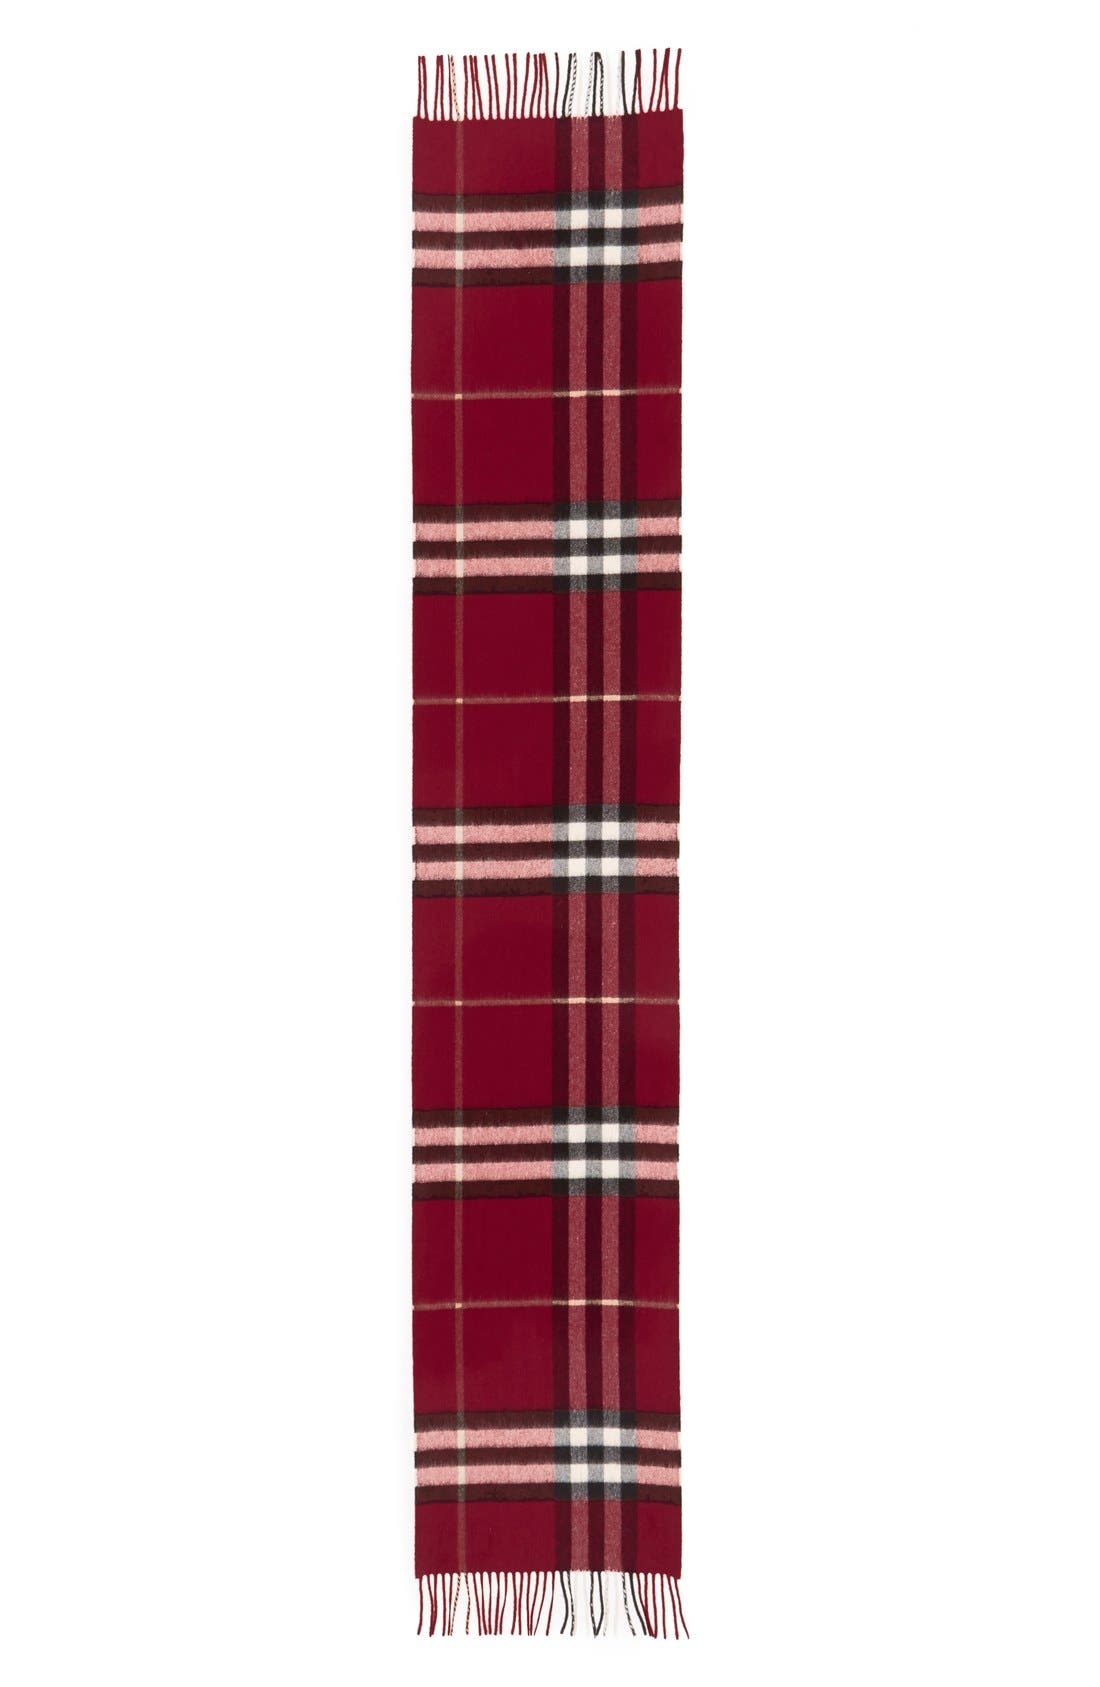 Alternate Image 1 Selected - Burberry 'Giant Check' Cashmere Scarf